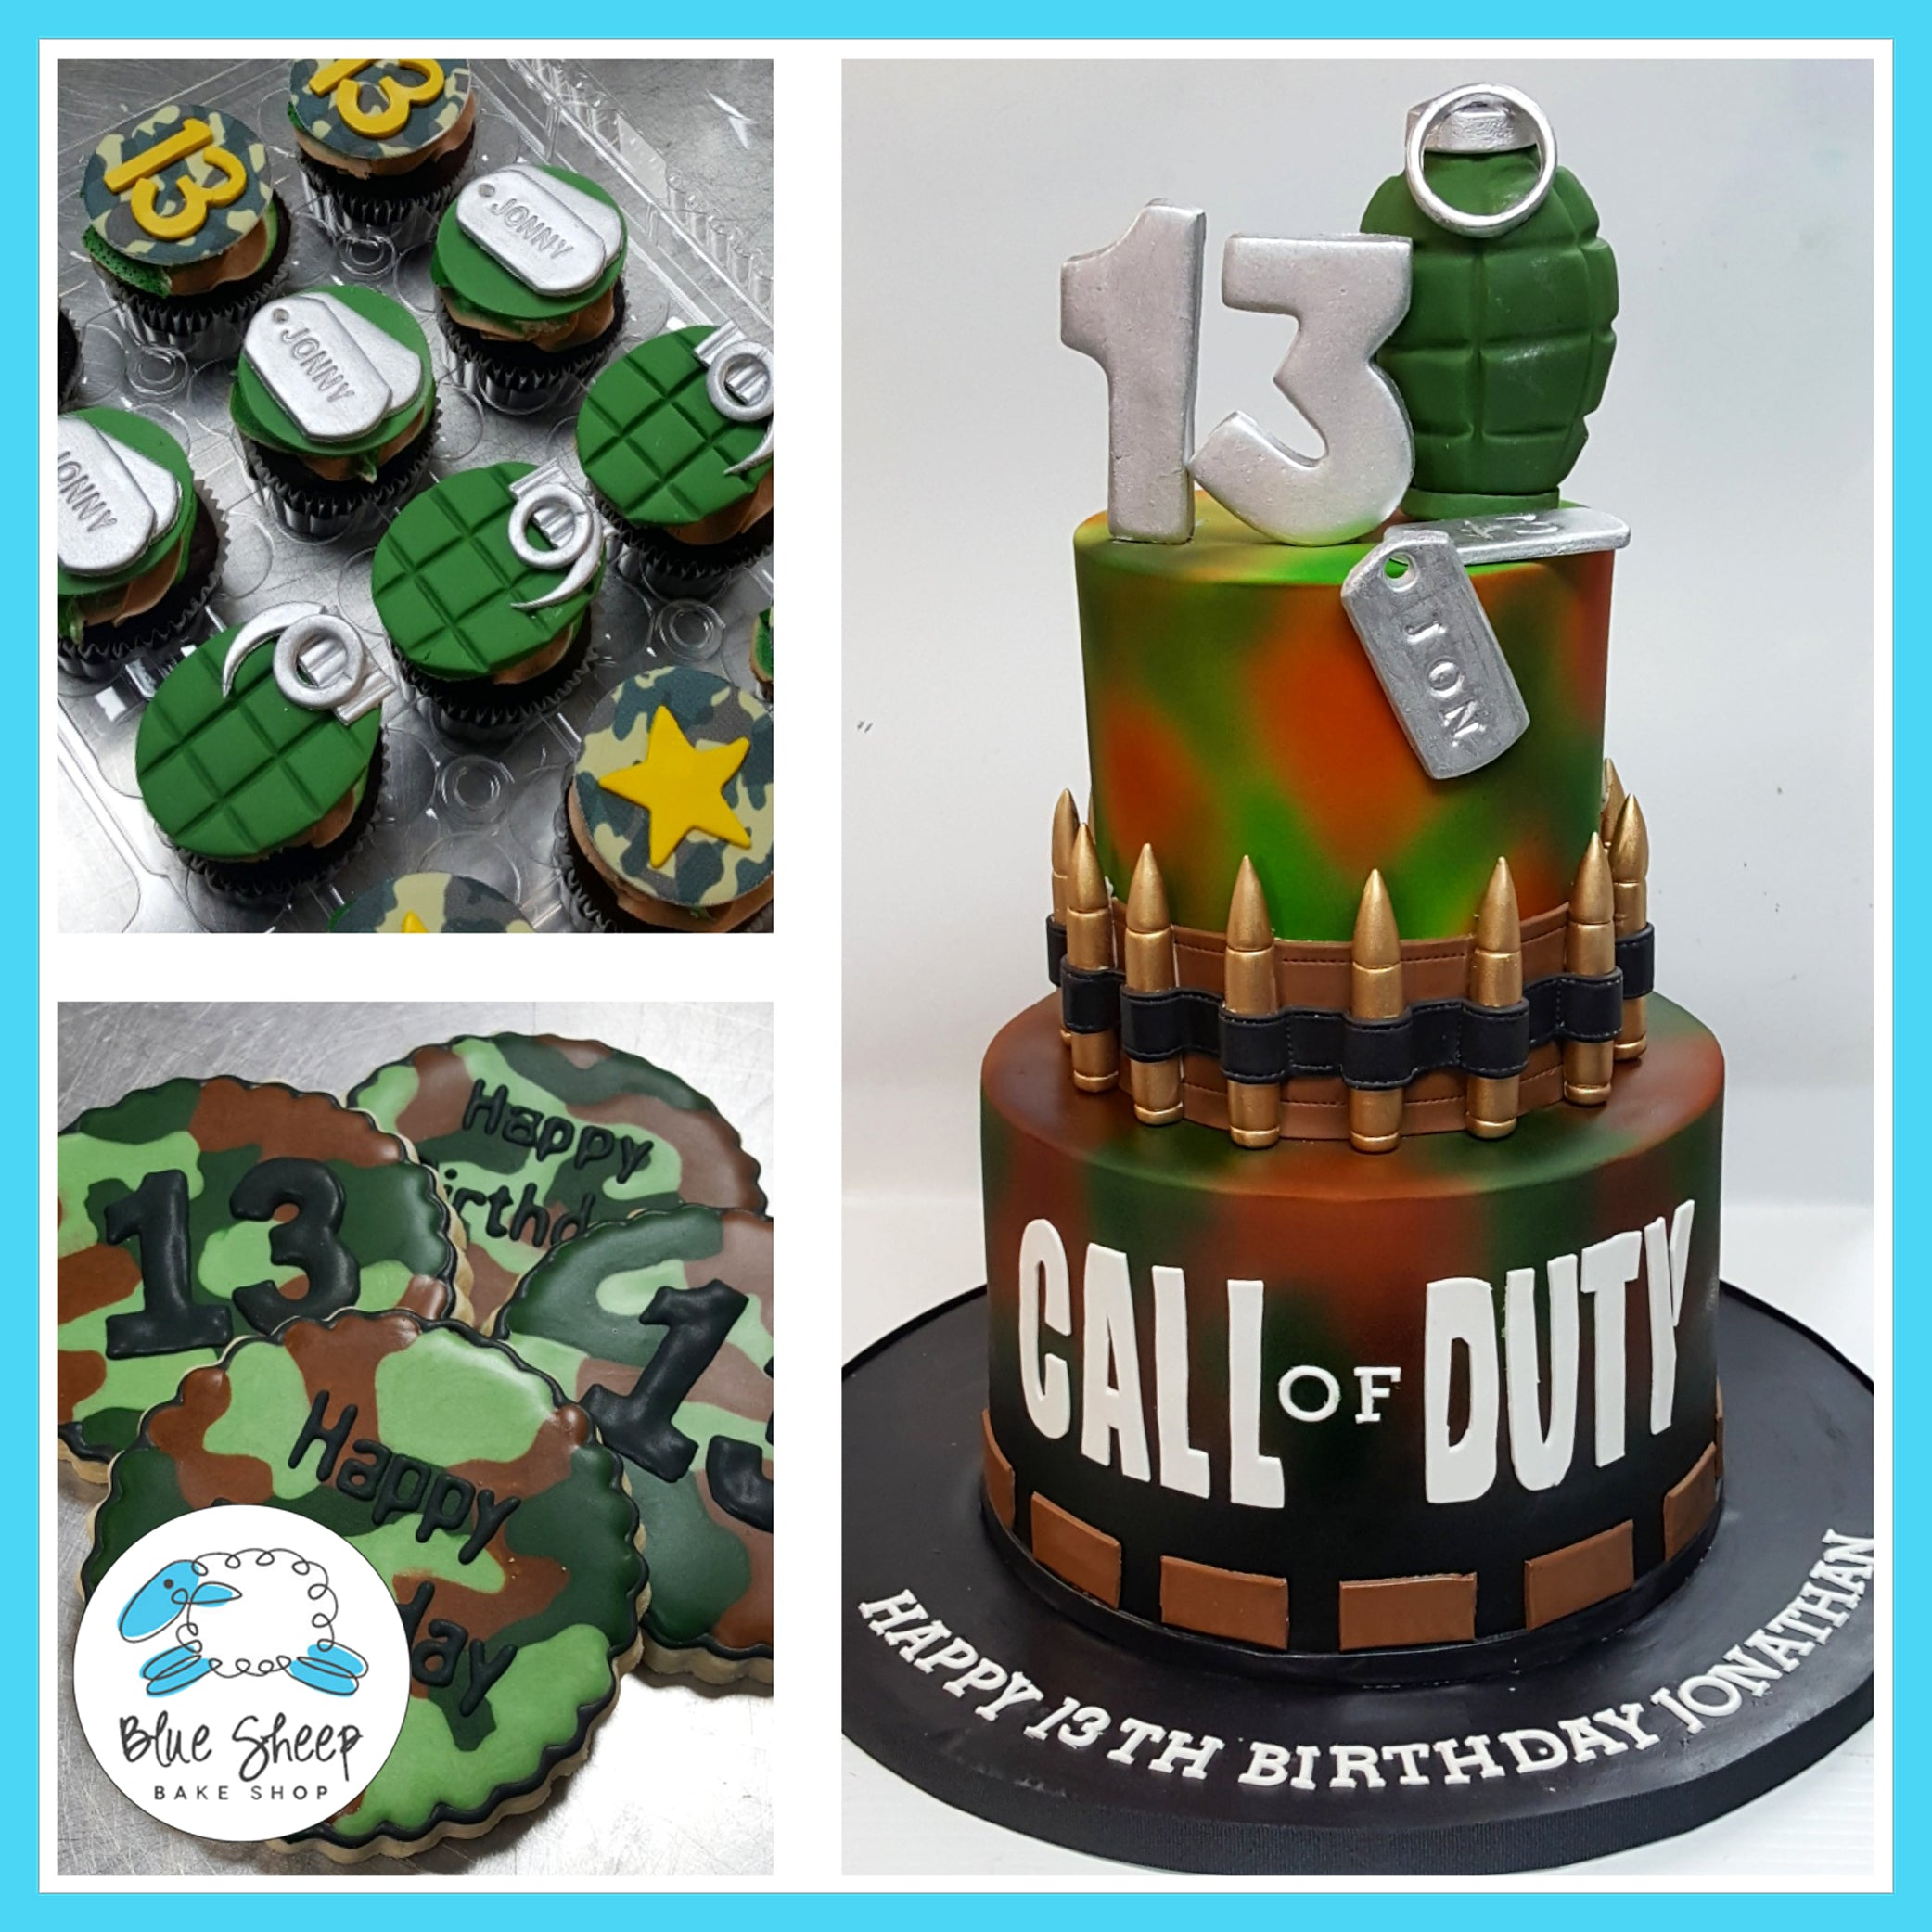 Call Of Duty Video Game Cake Nj Custom Cakes Blue Sheep Bake Shop